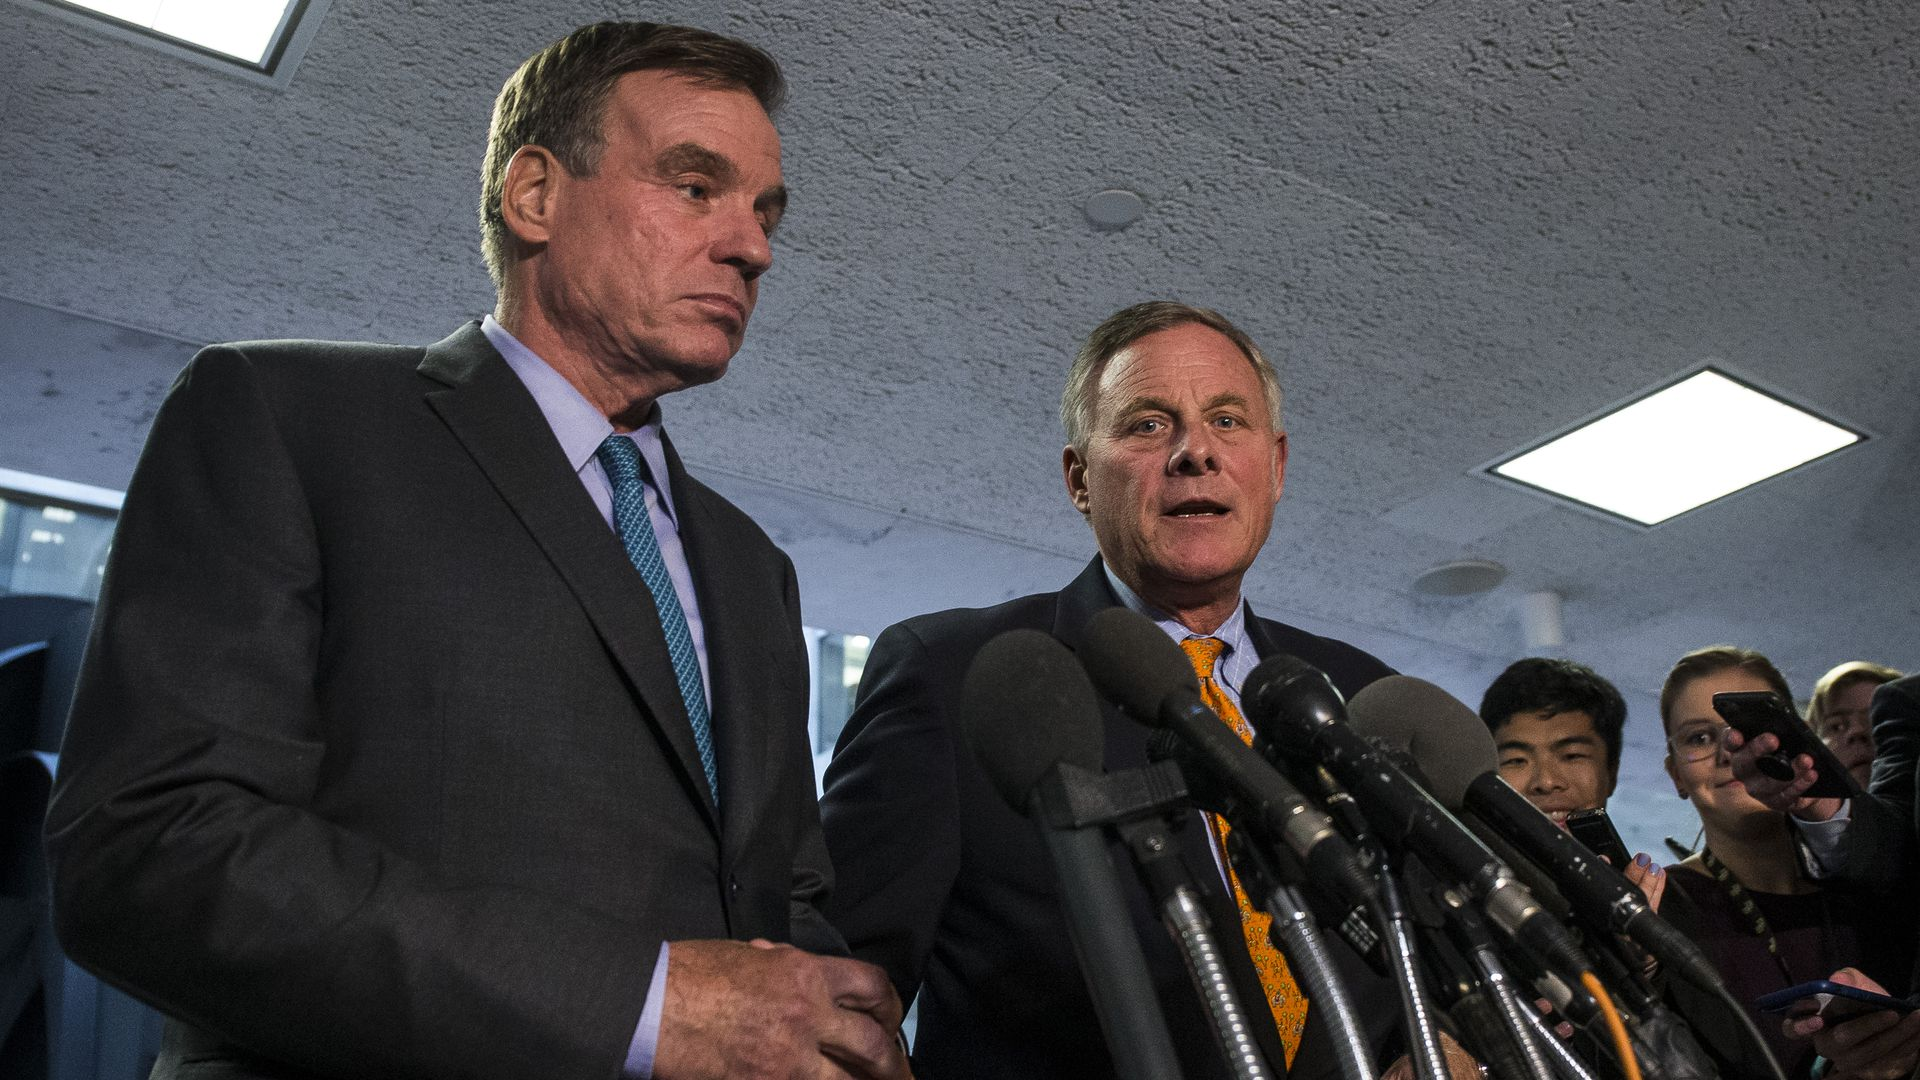 Mark Warner and Richard Burr